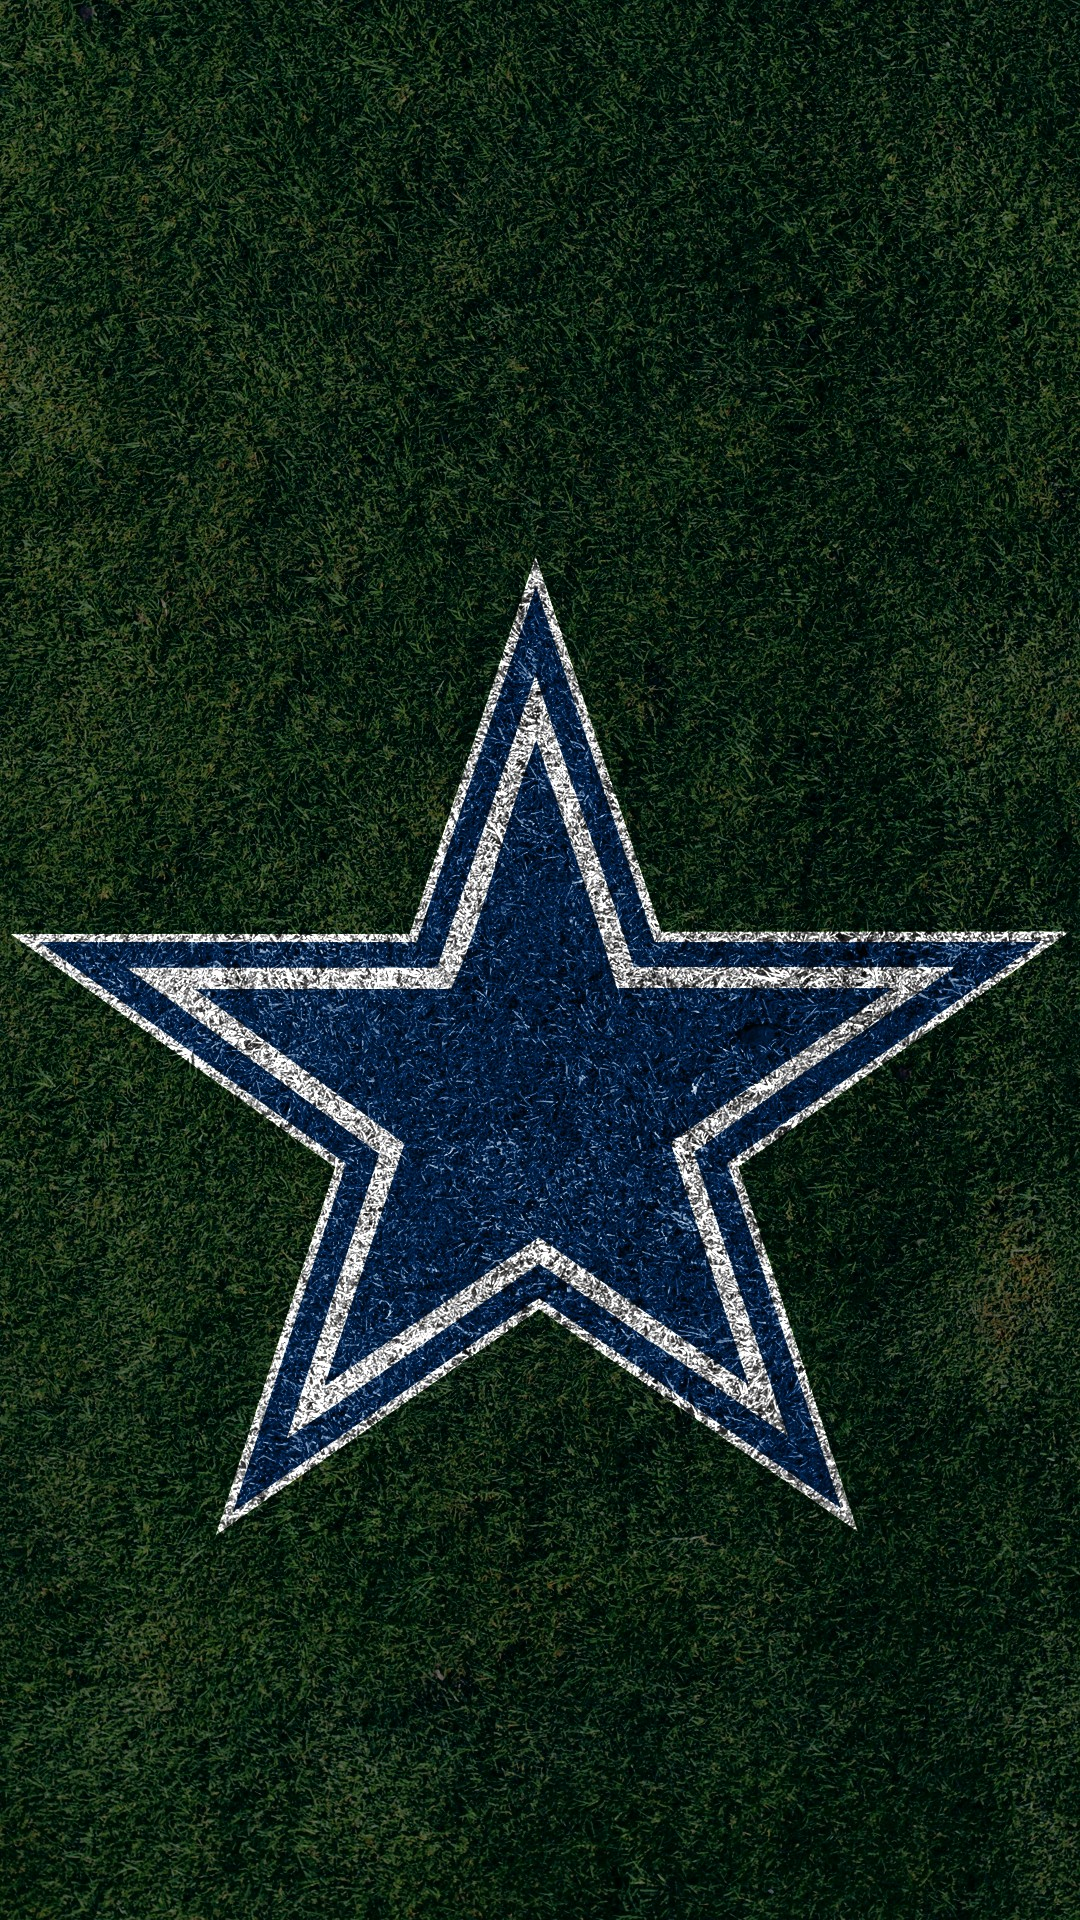 dallas cowboys wallpaper  u00b7 u2460 download free cool full hd dallas cowboys logo images cowboys logo image circle